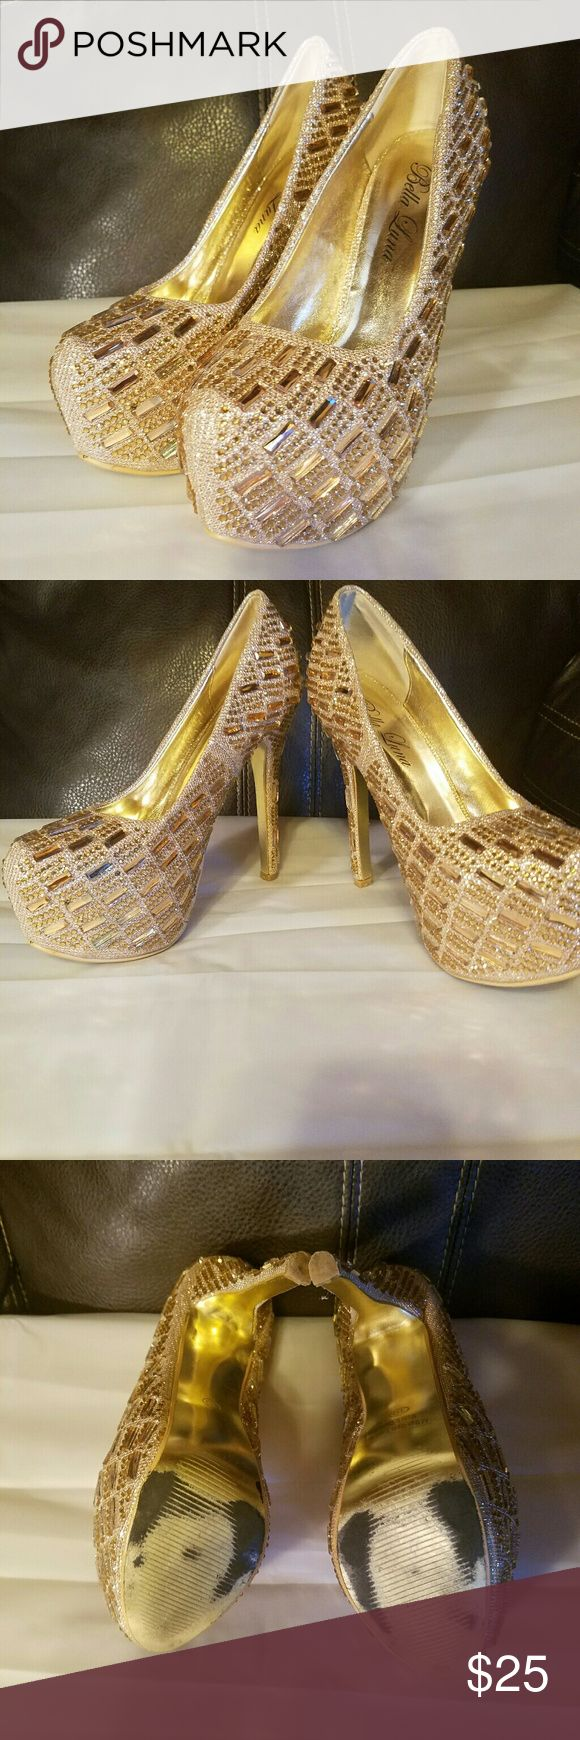 Bella luna heels Womens bella luna heels good condition looks like 2 stones missing in back of left heel as seen in photo these are used in good condition as is with no box bella luna  Shoes Heels